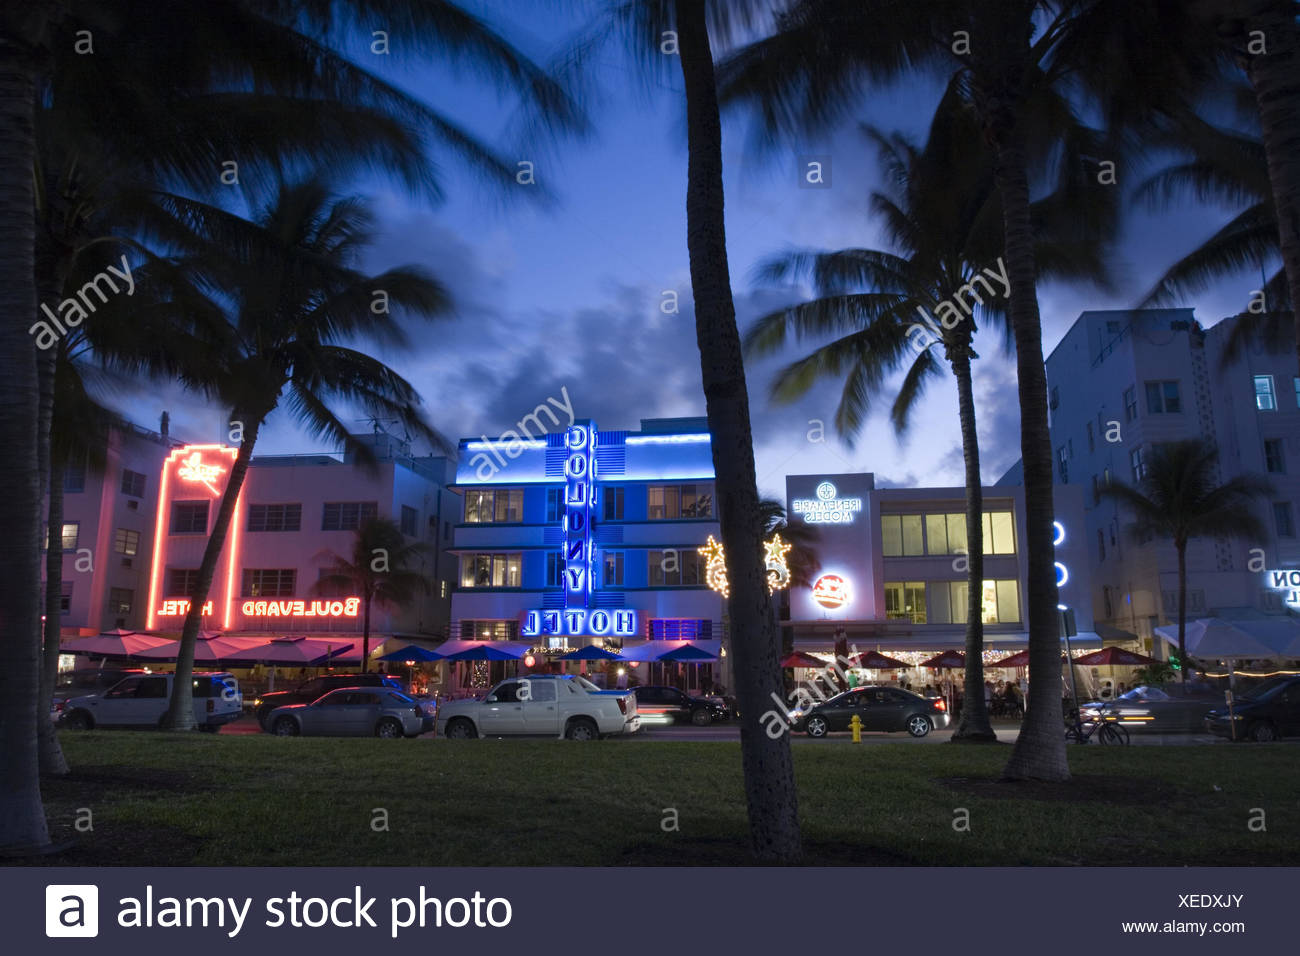 USA, Florida, Miami Beach, Art Deco  Historic District, Ocean Drive, Hotels,  Abend,  Nordamerika, Stadt, Bauwerke, Gebäude, Straße, Autos, Verkehr, Beleuchtung, beleuchtet, bunt, Neonlichter, Leuchtreklame, Leuchtschrift, Palmen, Stock Photo